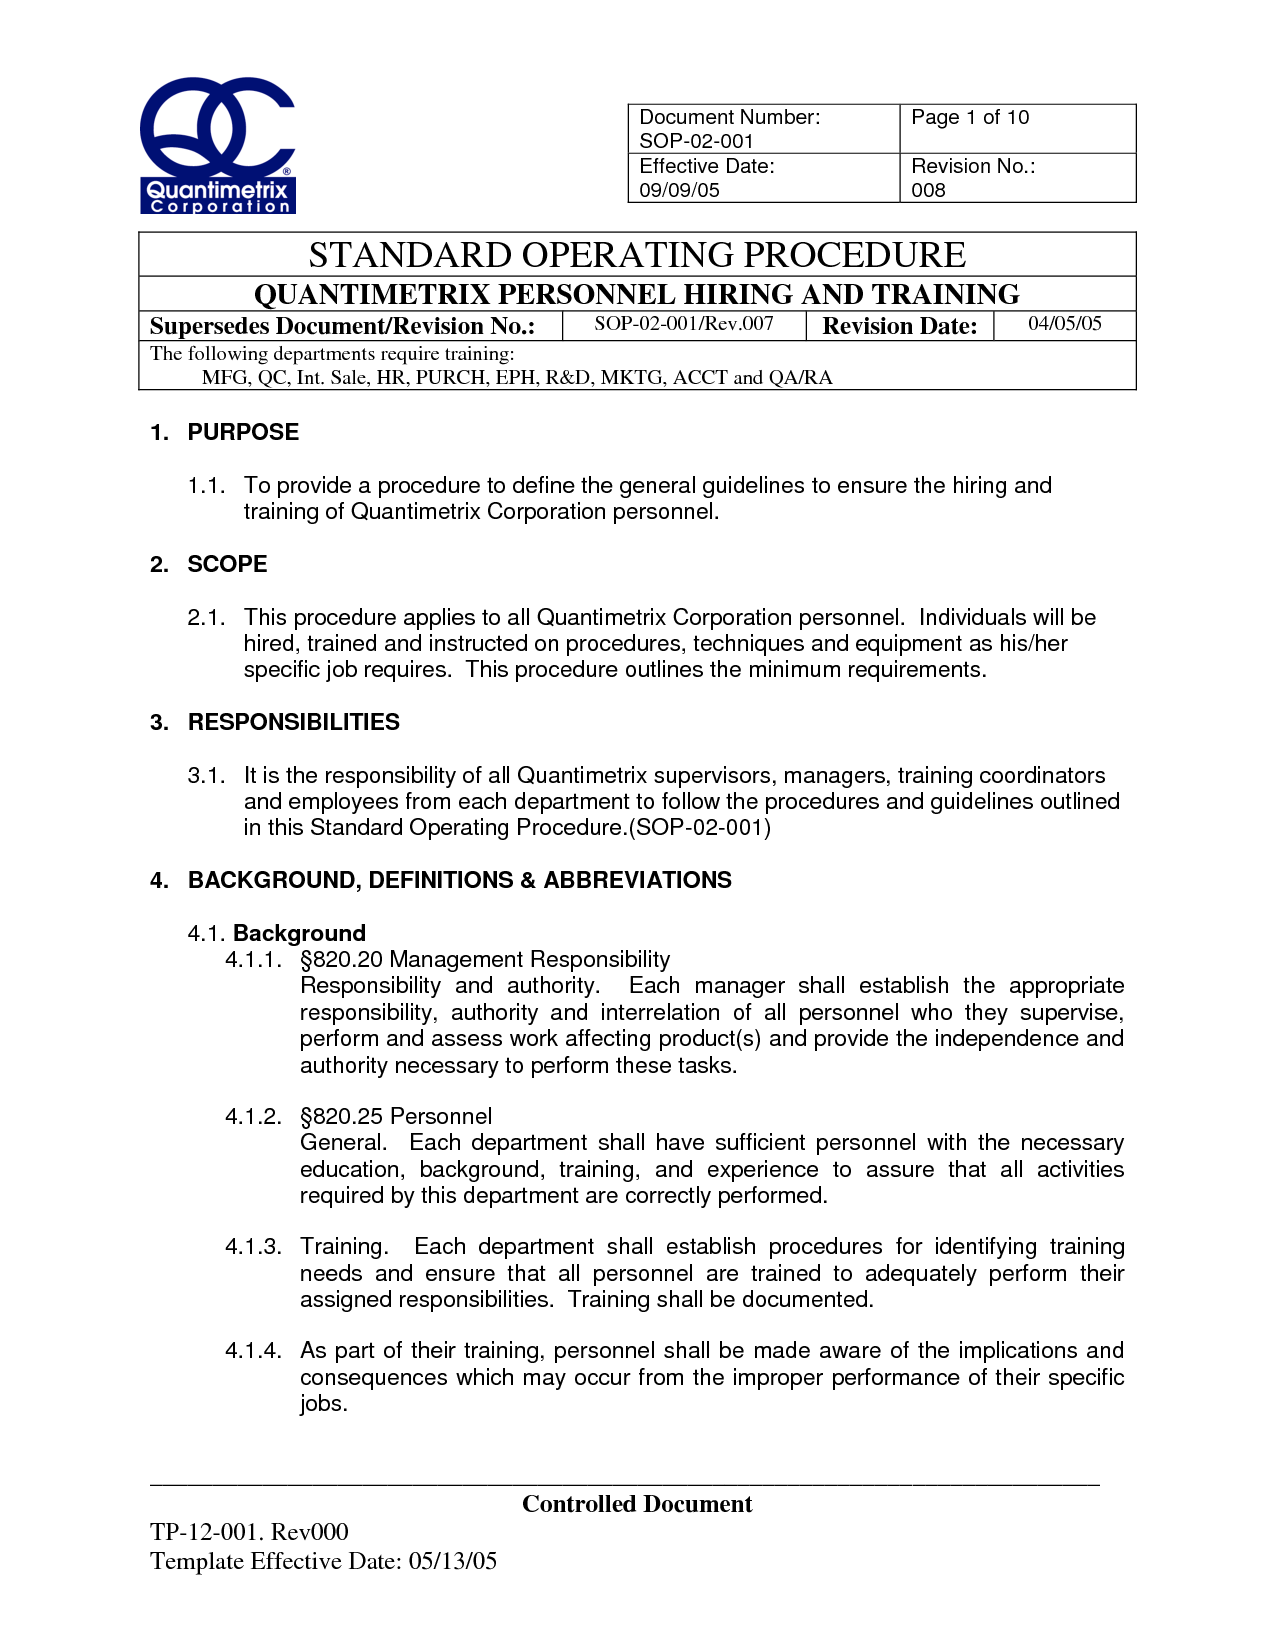 Standard Operating Procedure Sop Template